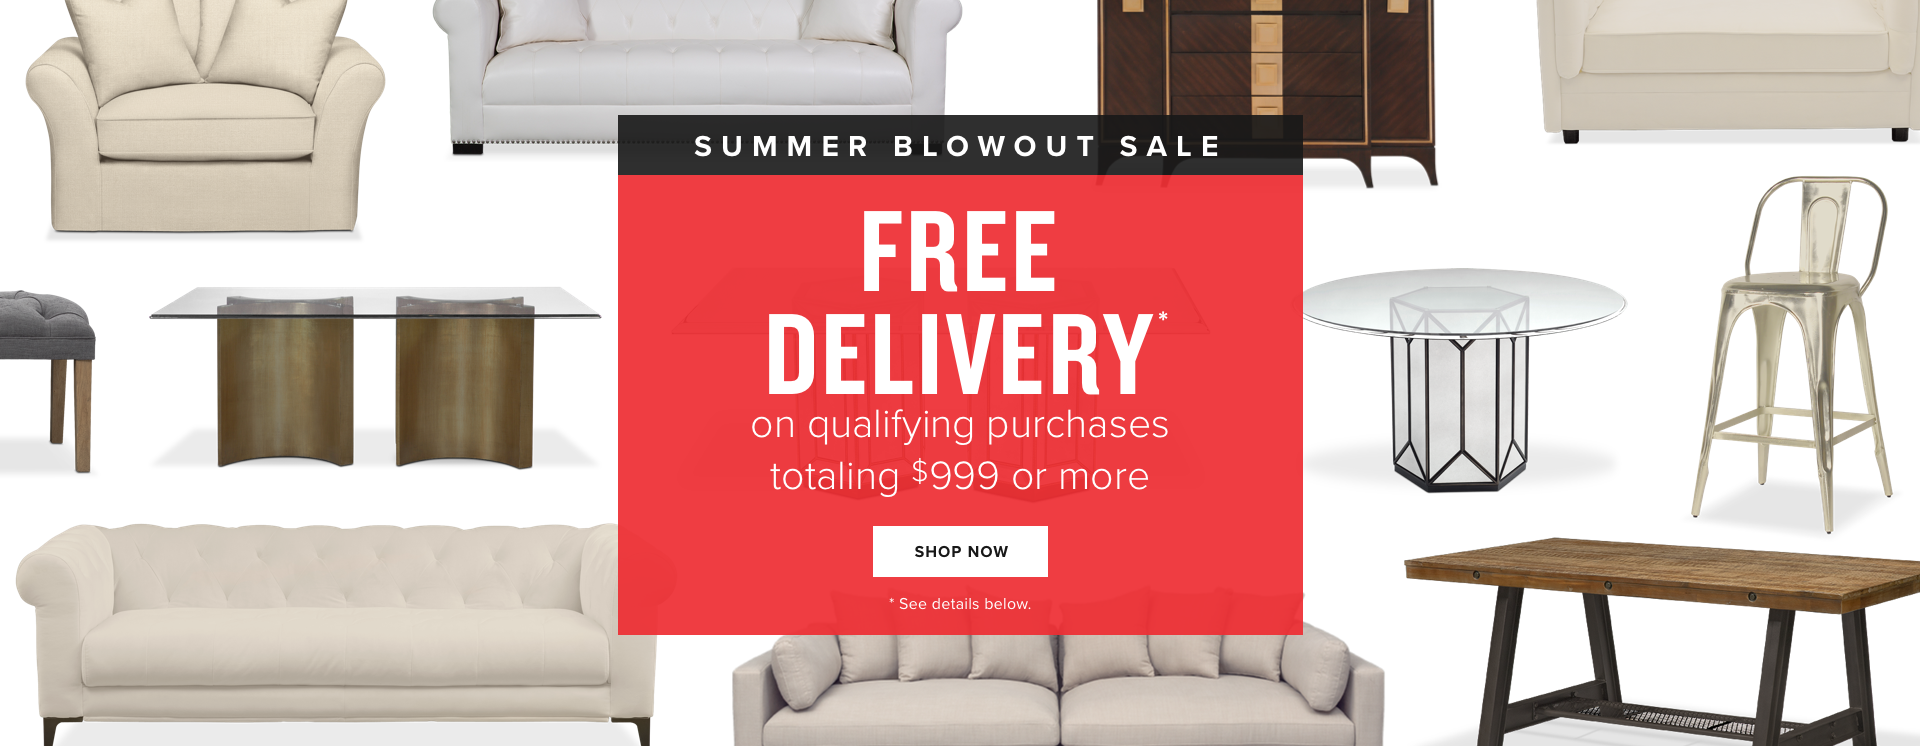 summer blowout sale | free delivery* on qualifying purchases totaling $999 or more | shop now | *see below for details